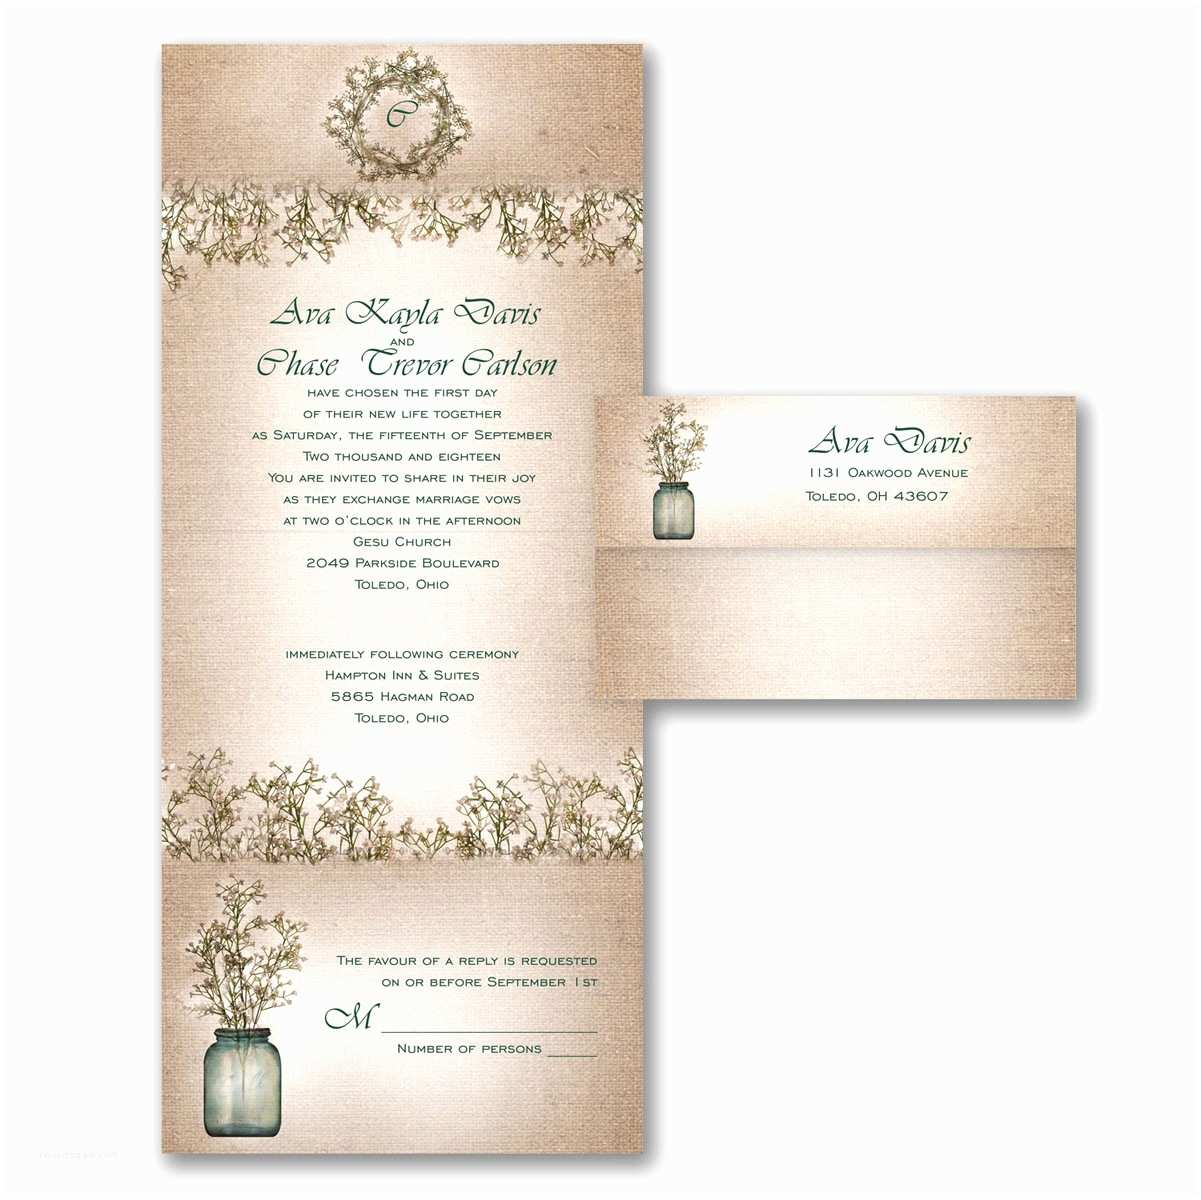 Seal and Send Wedding Invitations Vistaprint Seal and Send Wedding Invitations